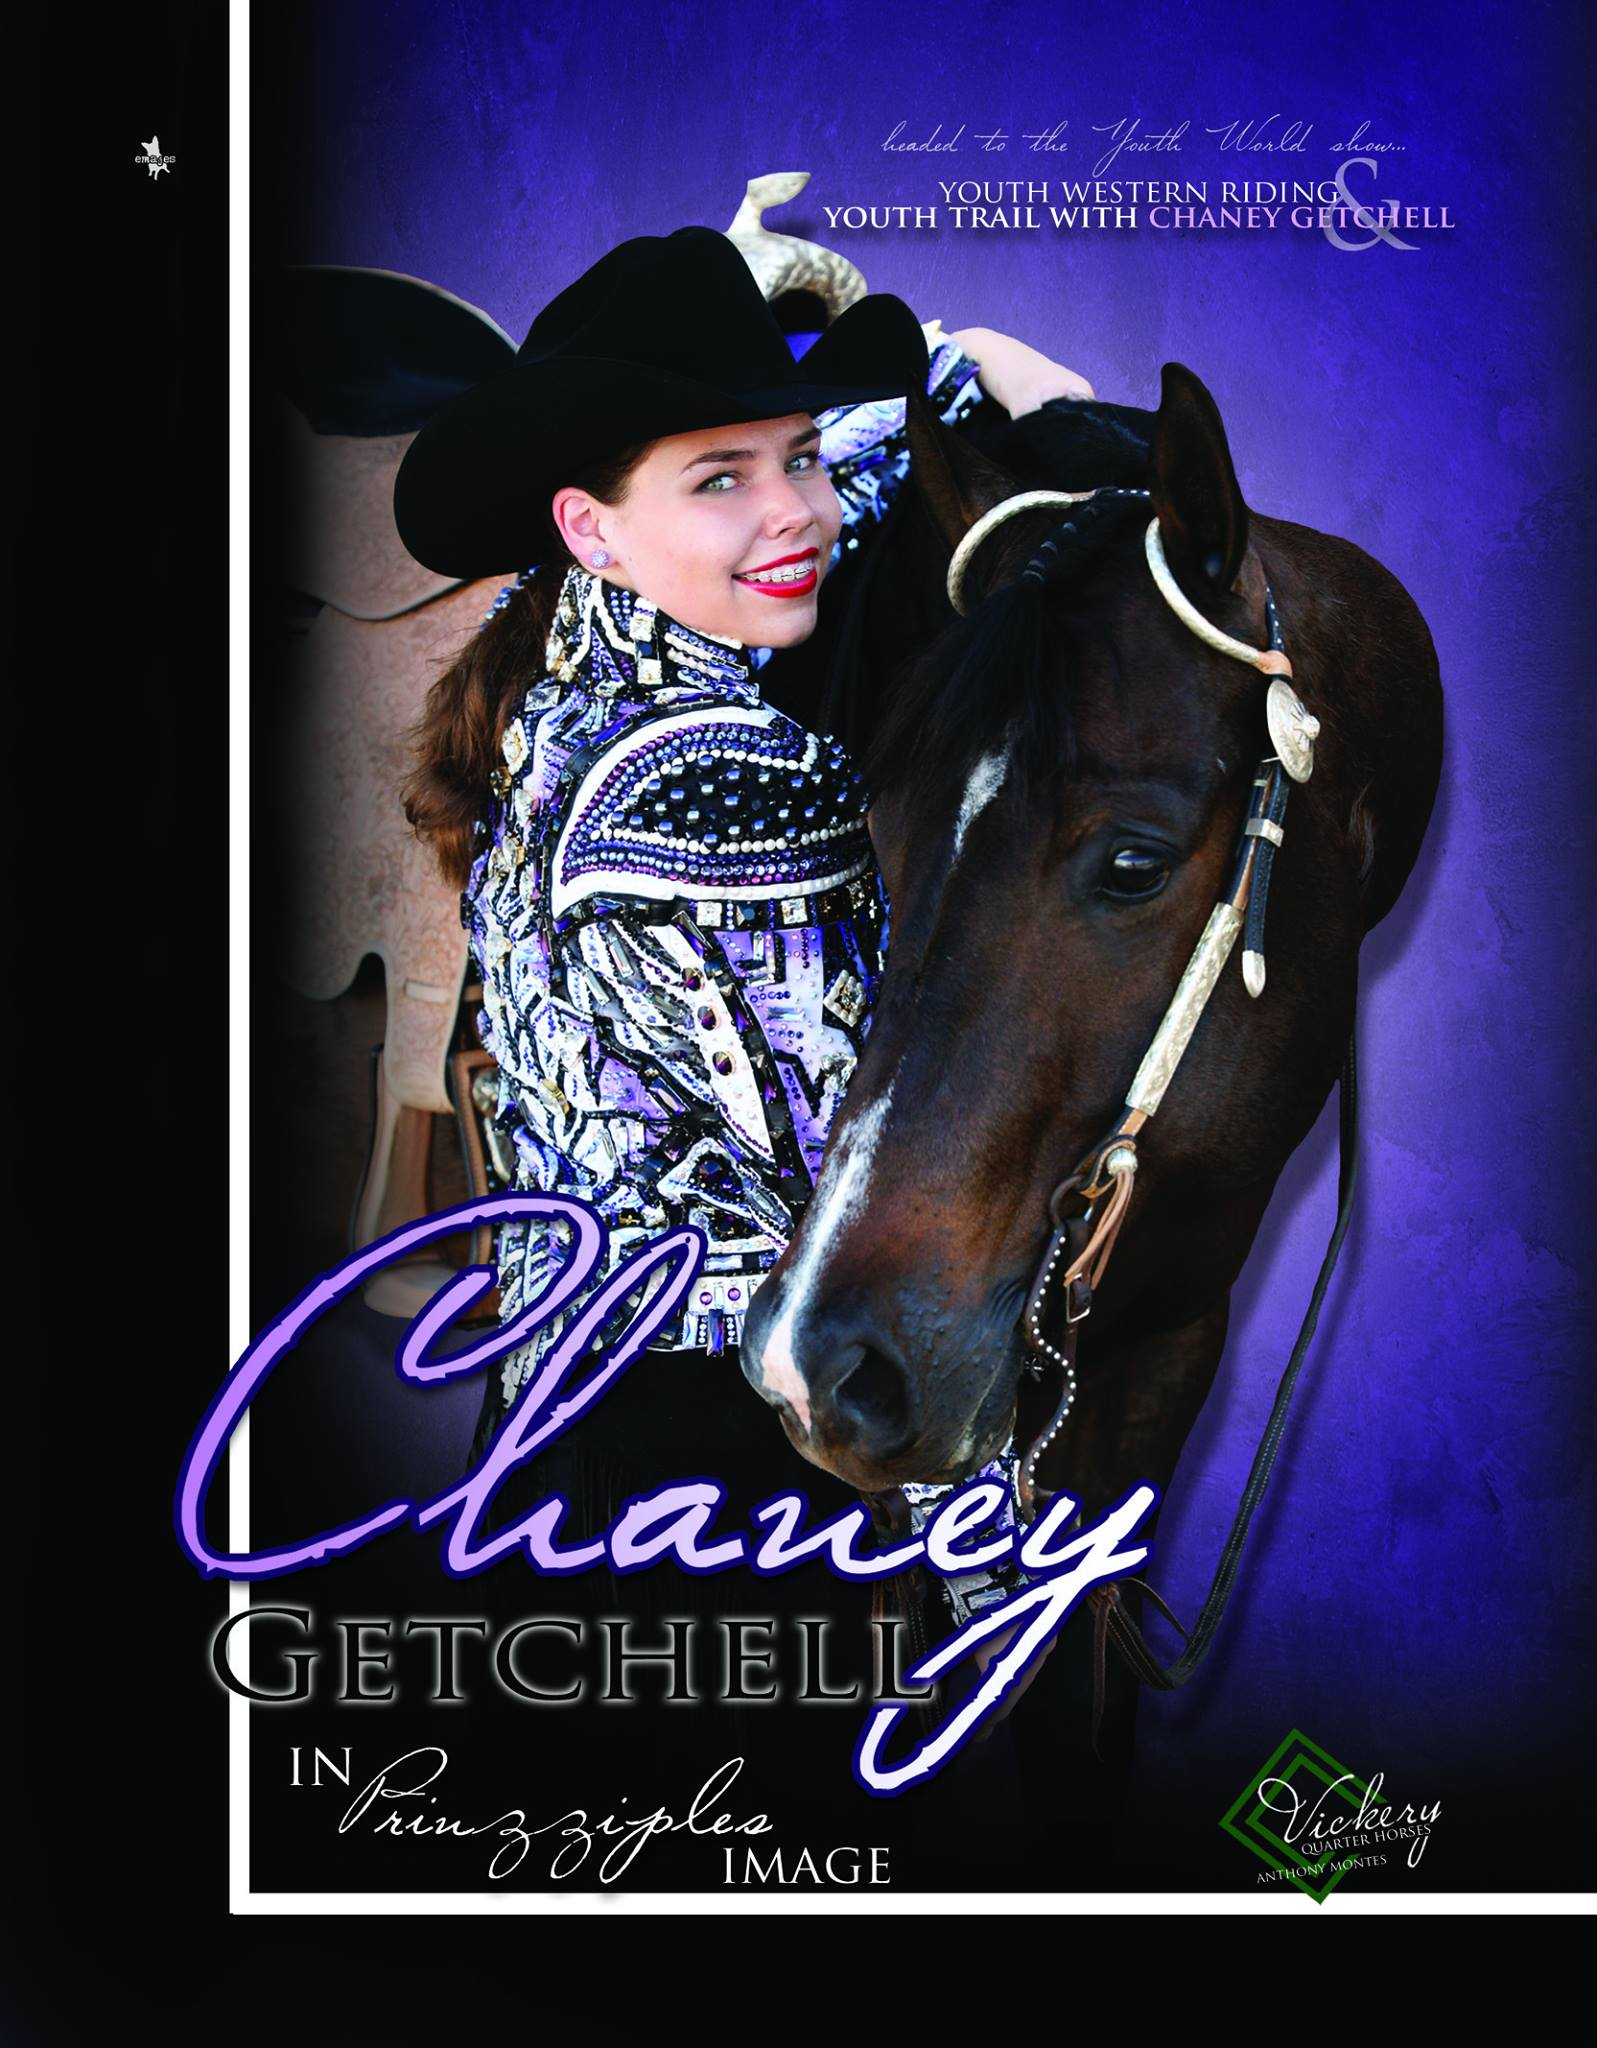 Chaney getchell ad 0